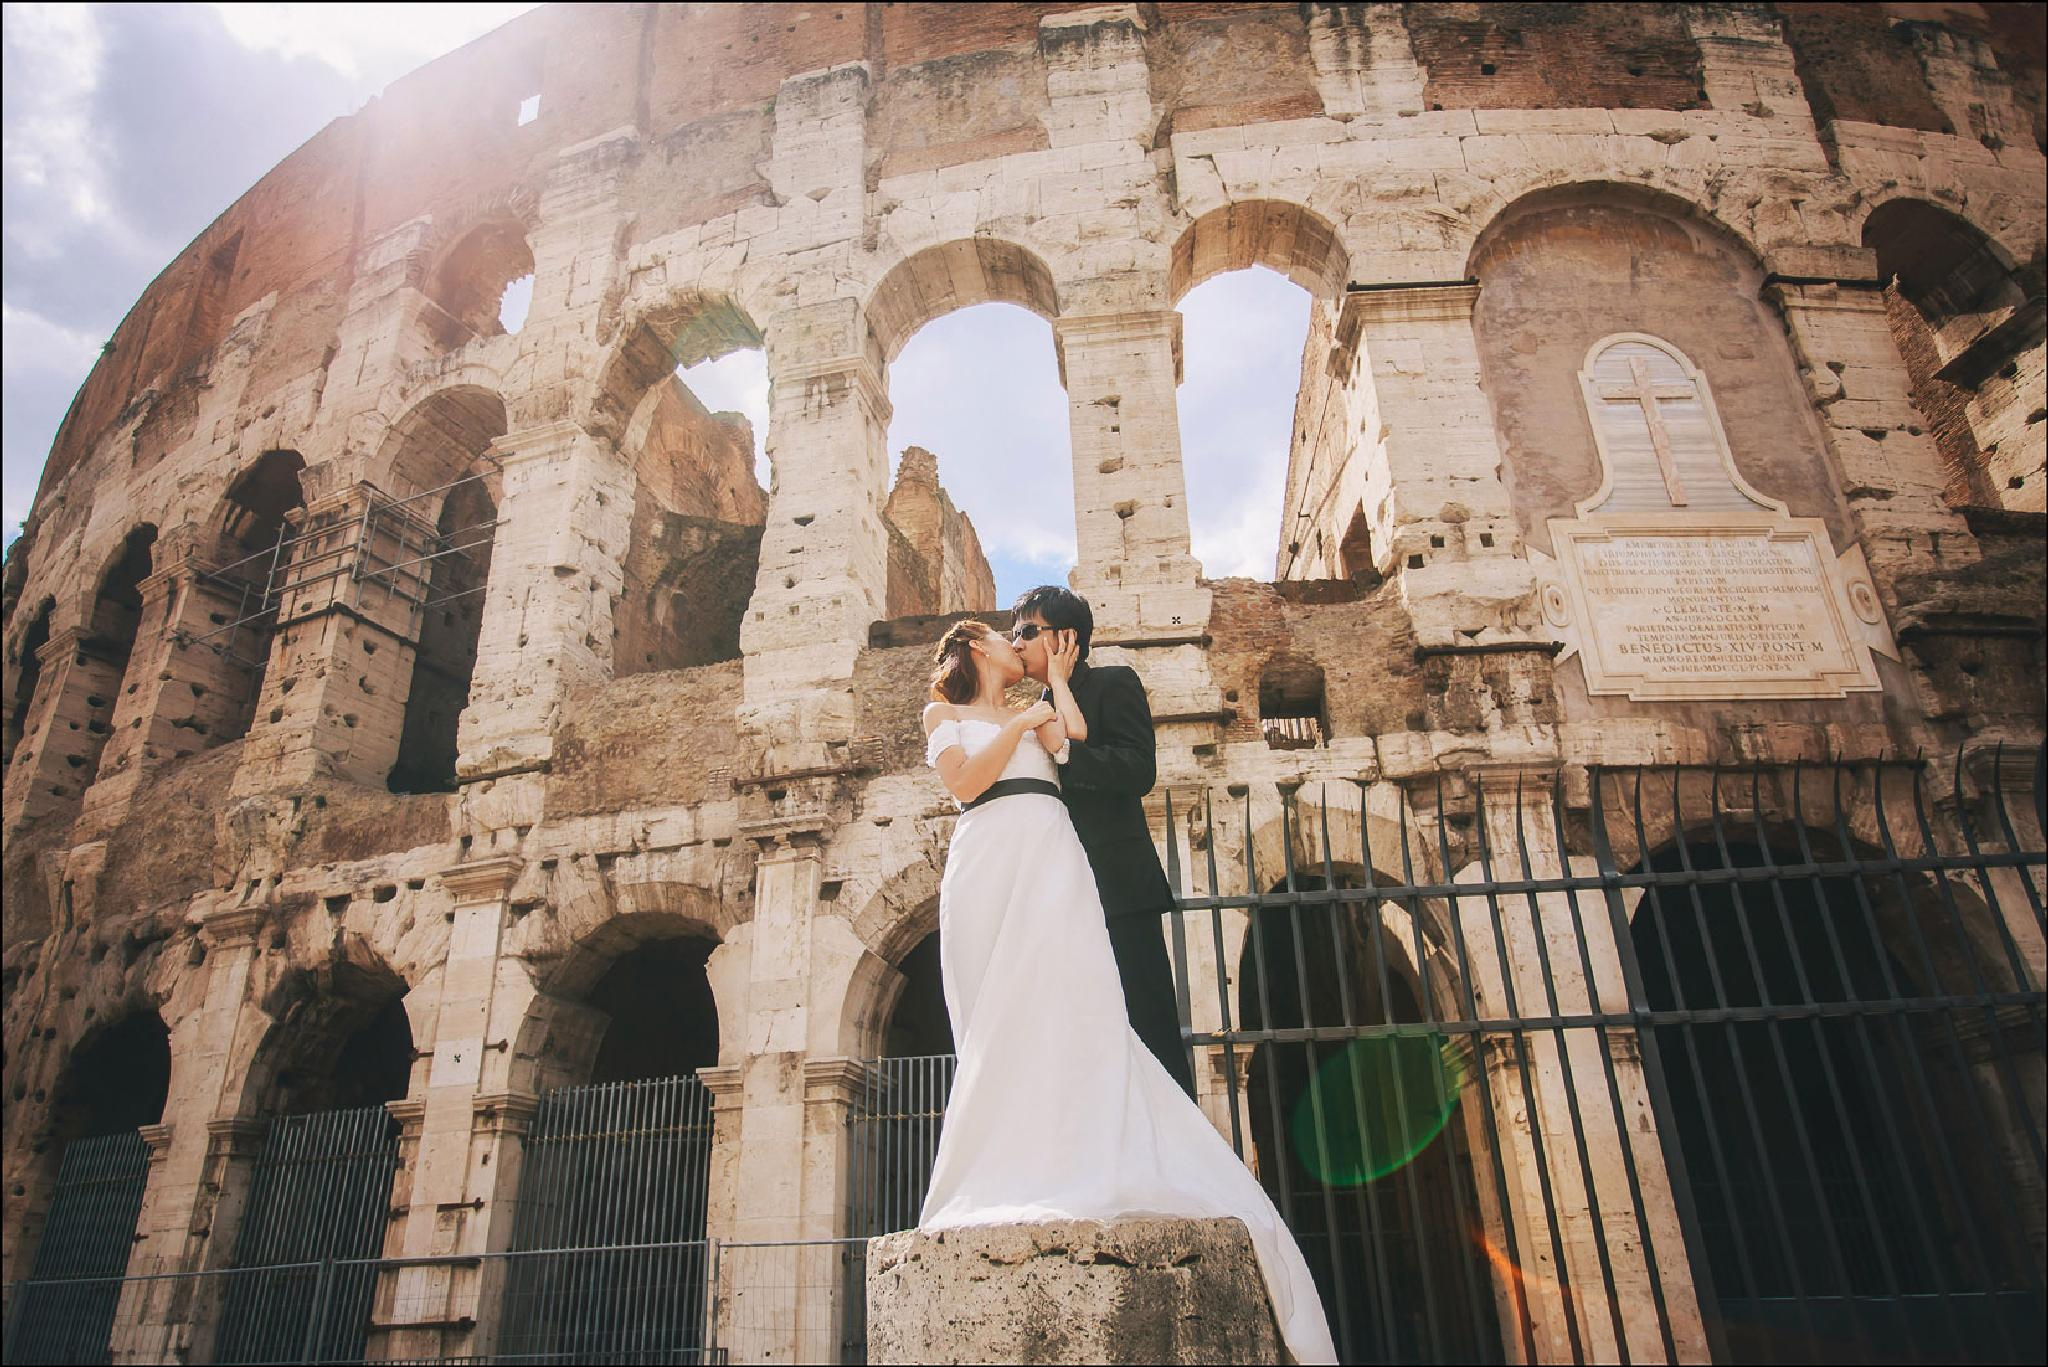 man with Rayban's at the Colosseum  by vinion